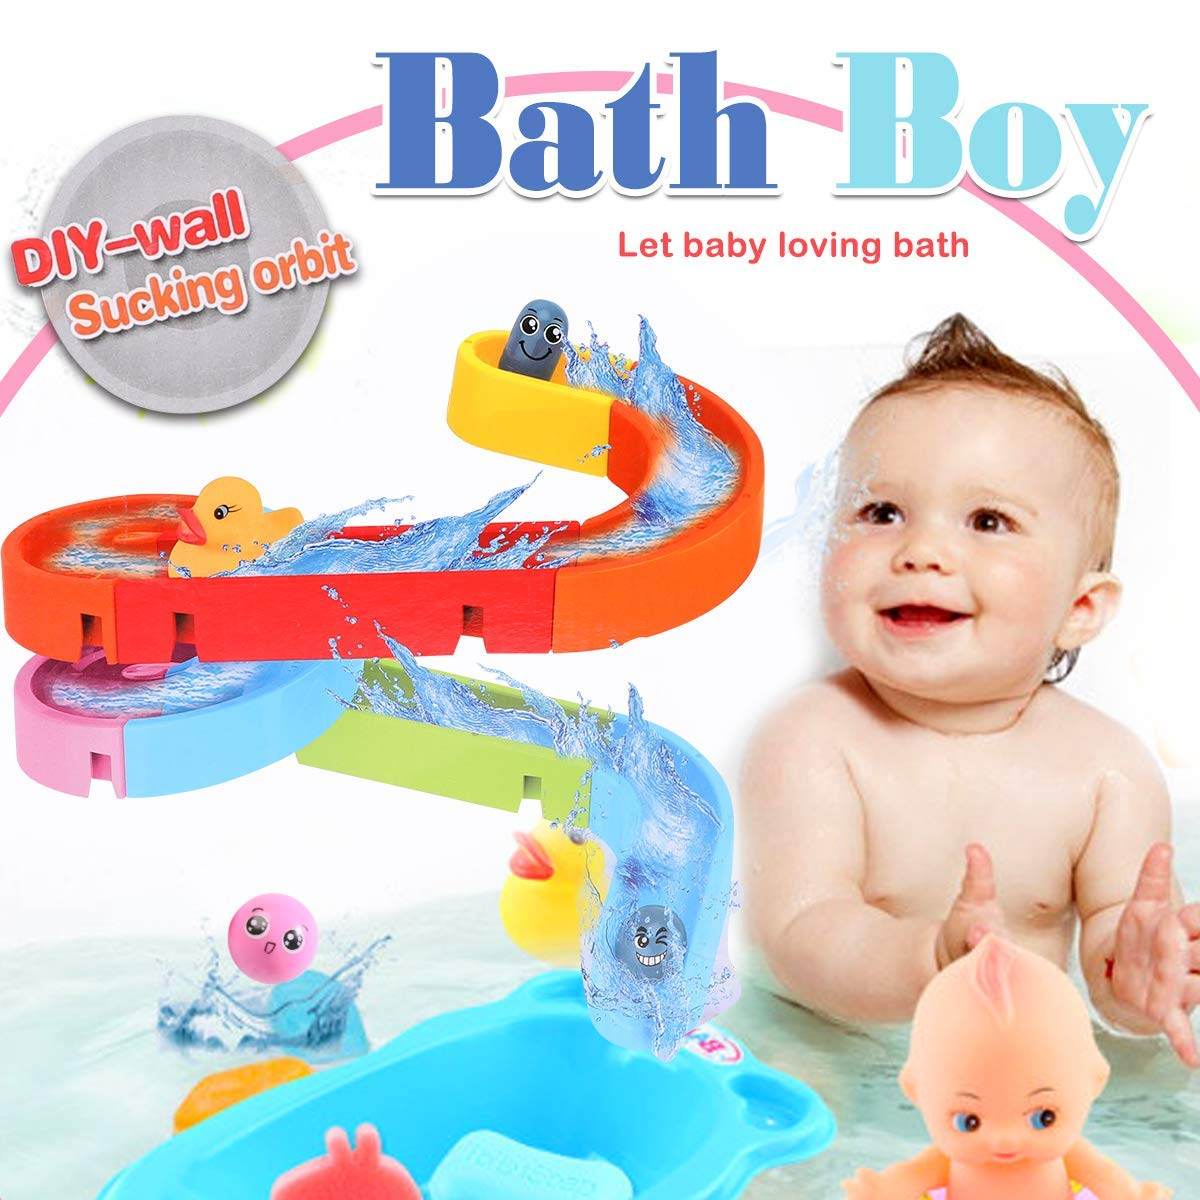 Happytime Combine Track Pathway Bath Toy 2020 DIY Free Assemble Bathroom Track Game BathtubToys for Baby (No Batteries Required)…